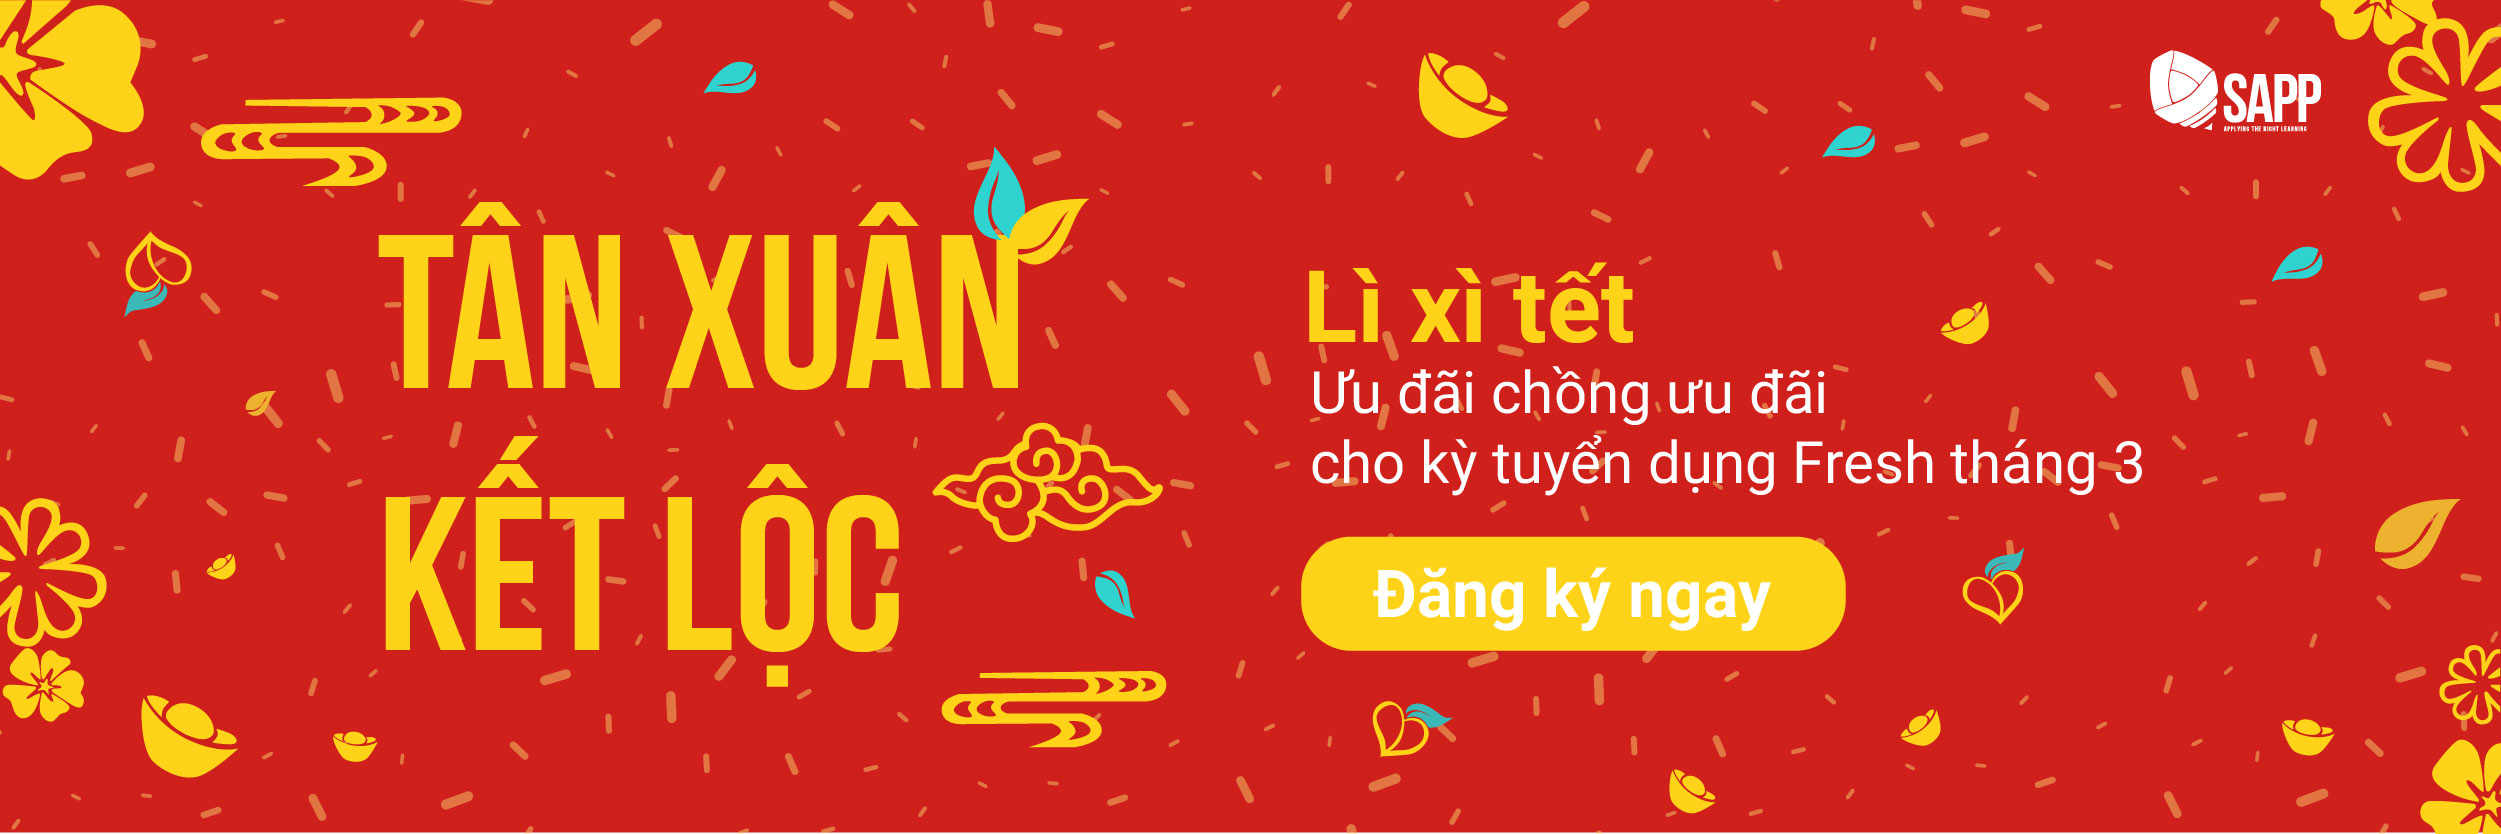 Giang_Email cover_600 x200